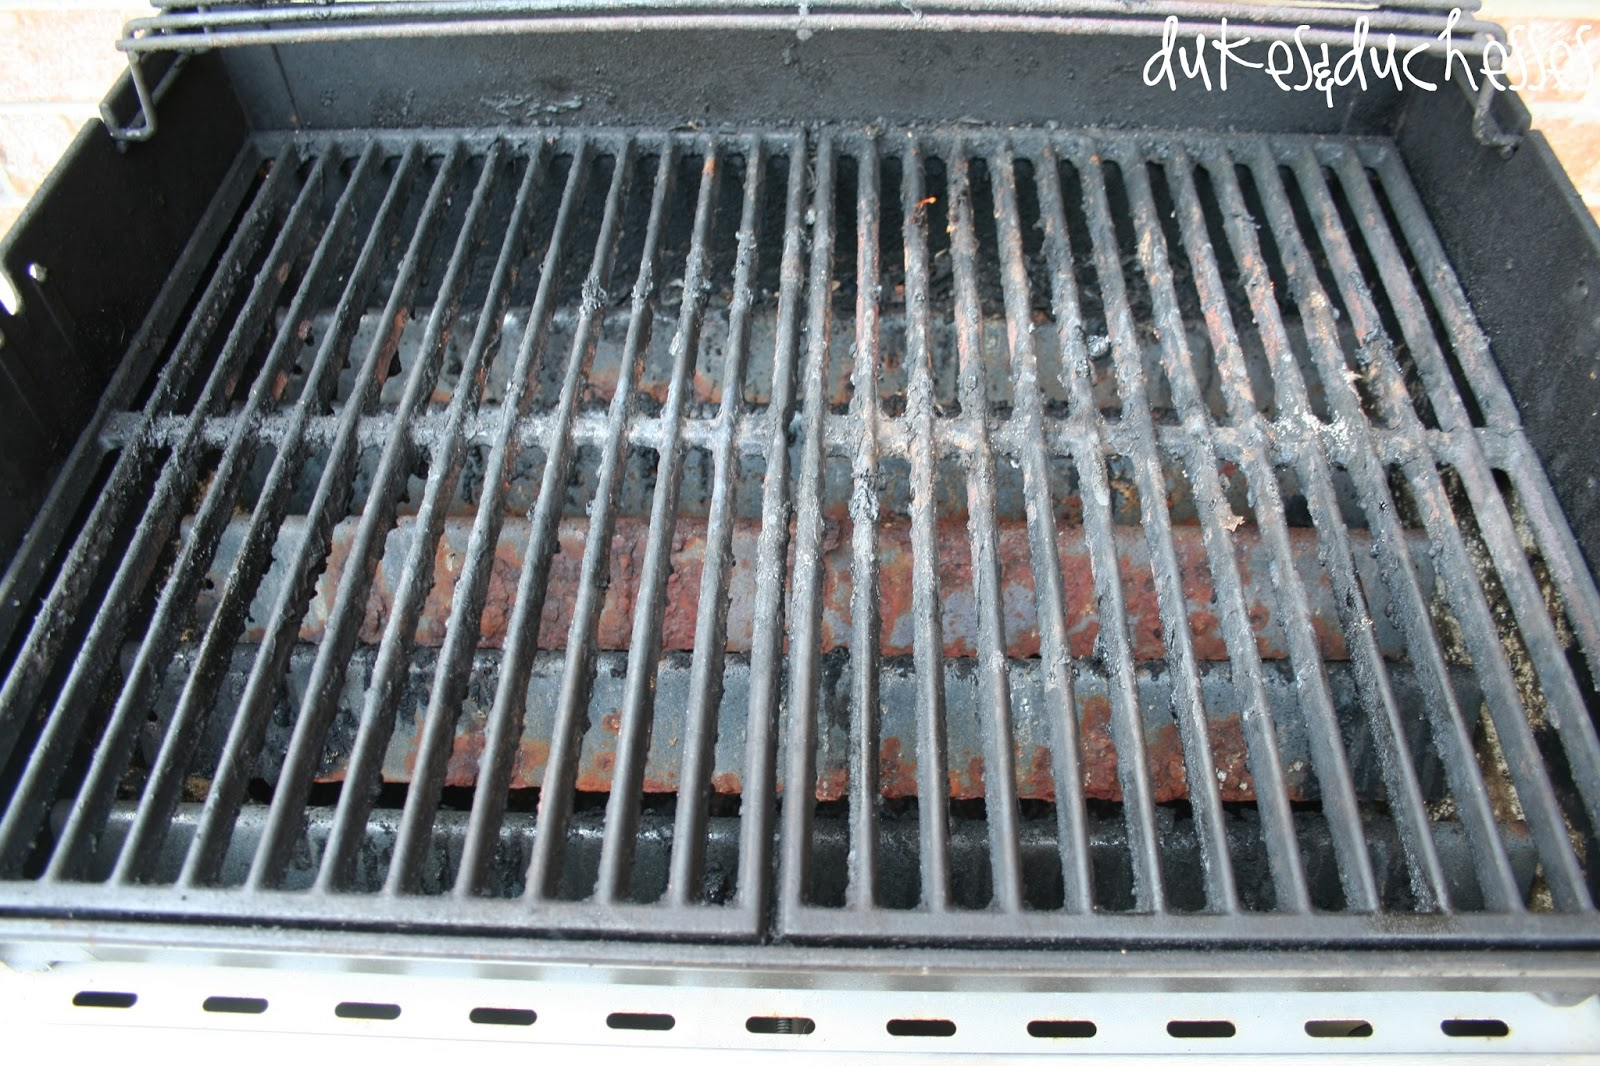 how to clean my grill grates